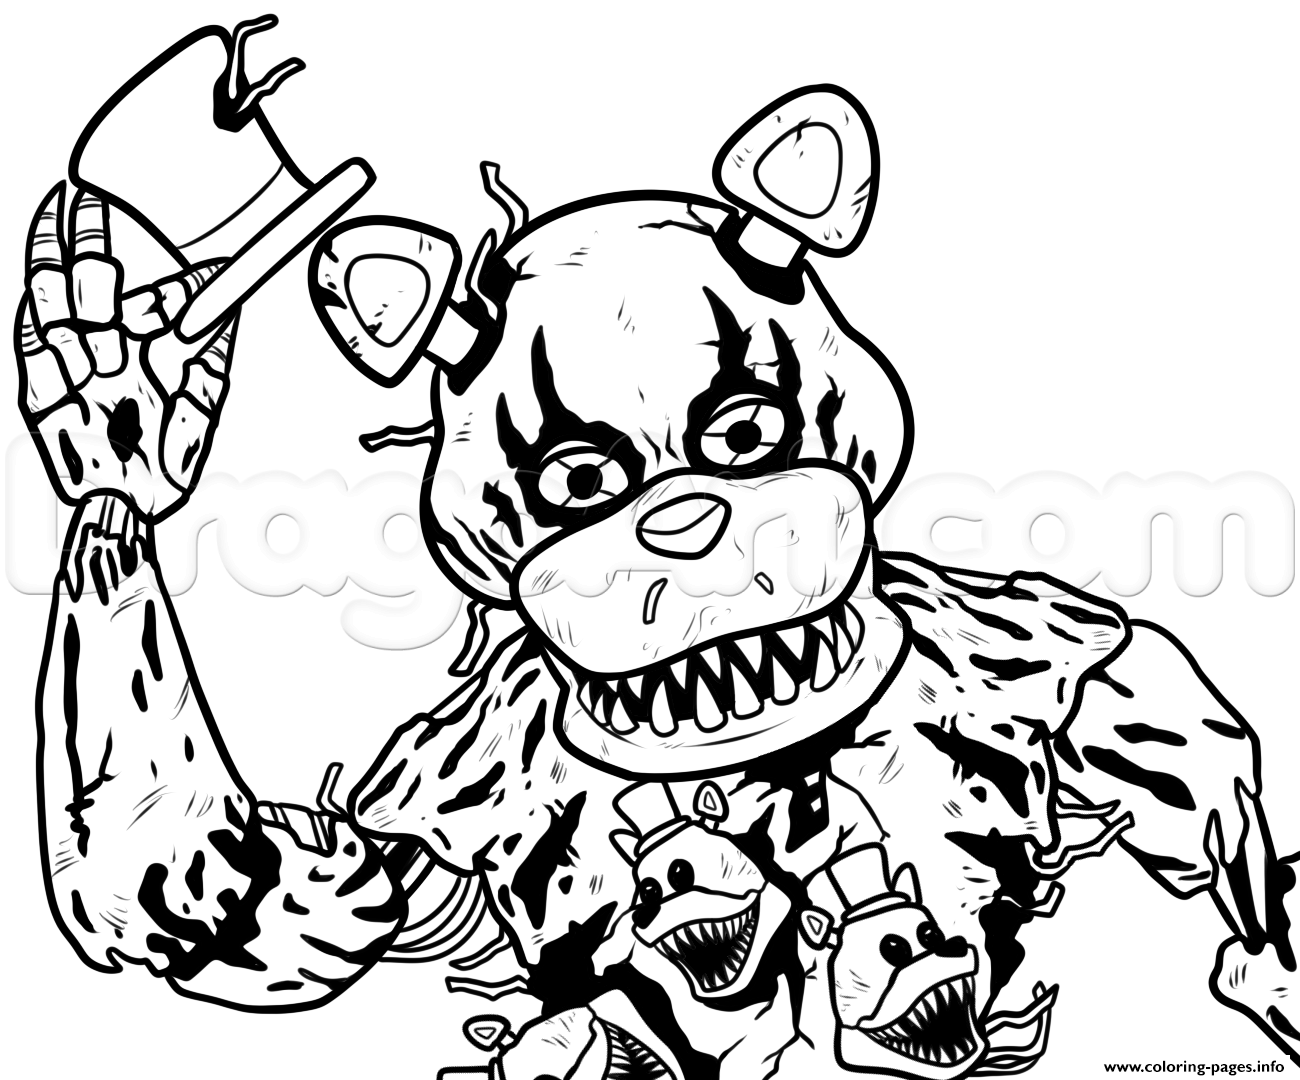 Draw nightmare freddy fazbear fnaf coloring pages printable for Freddy coloring pages